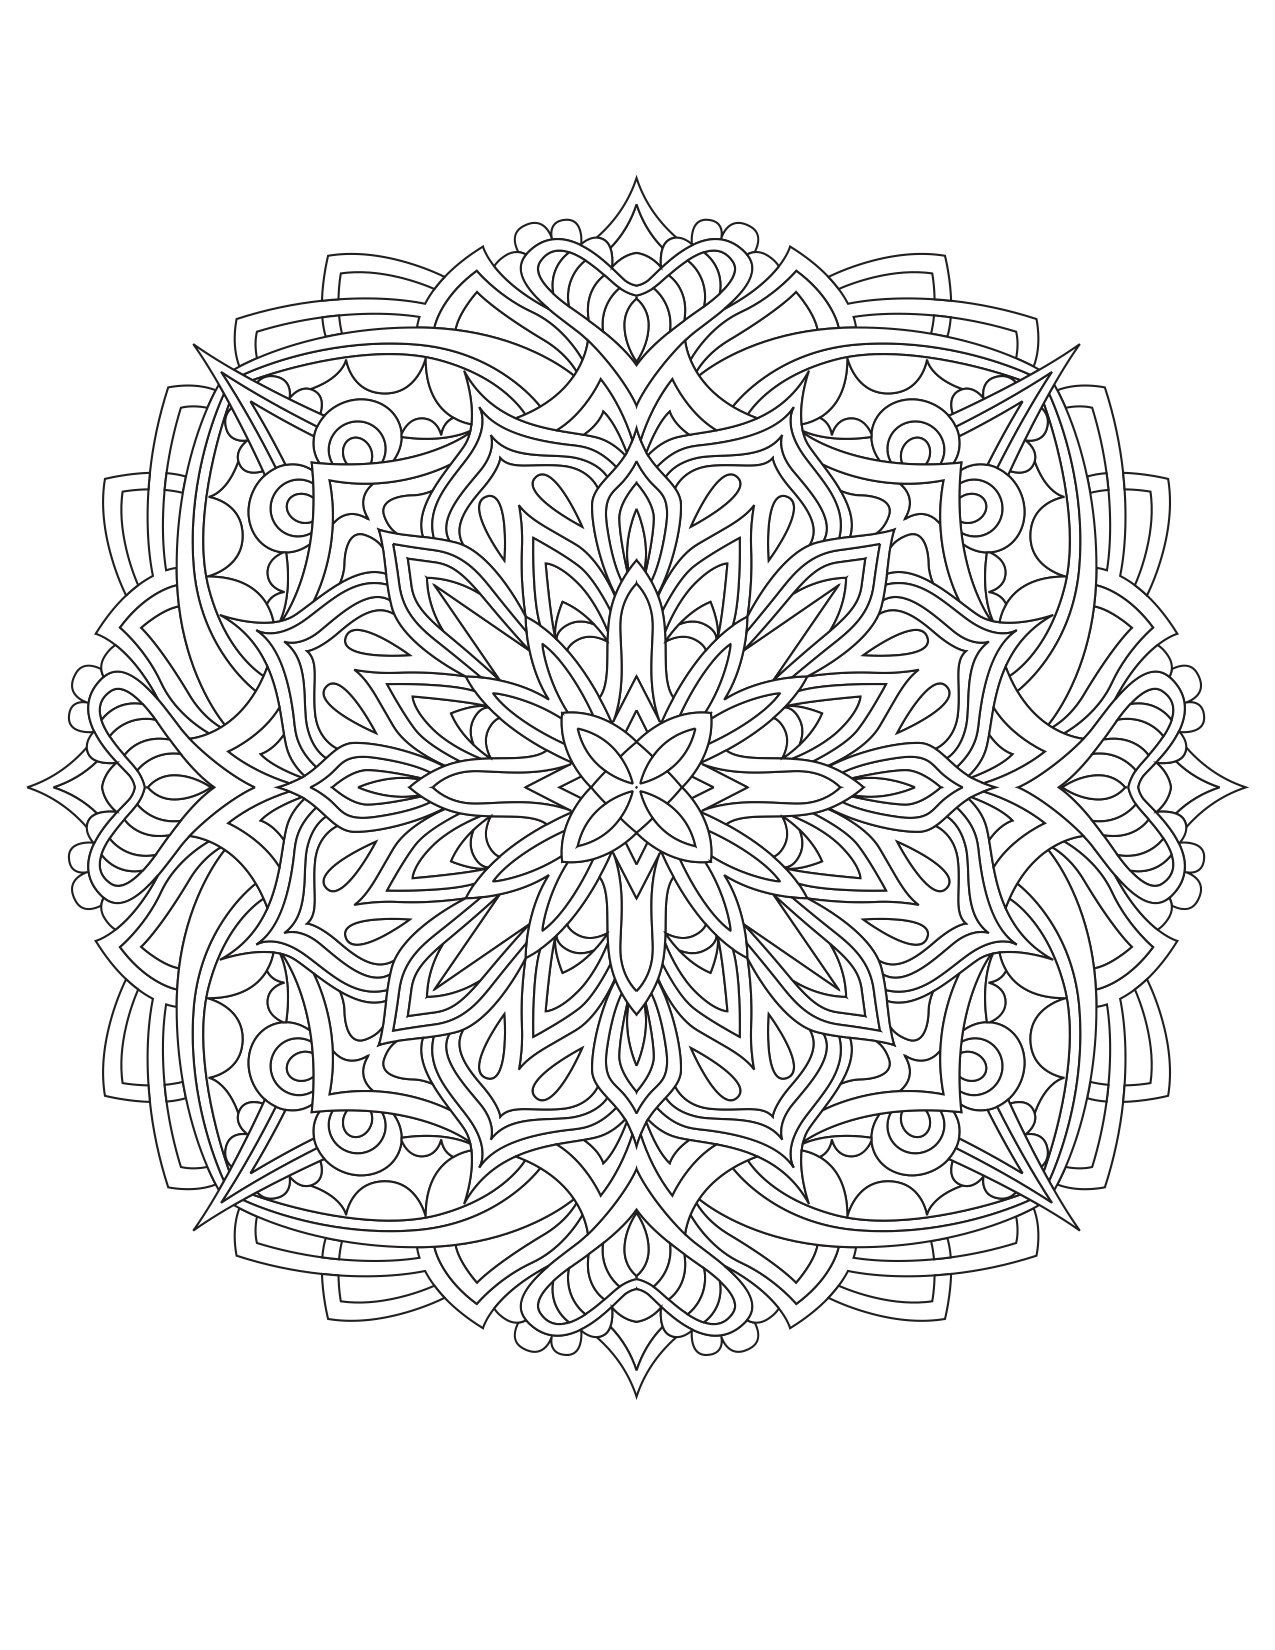 mandala hand coloring pages hand drawn mandala pages hand coloring mandala